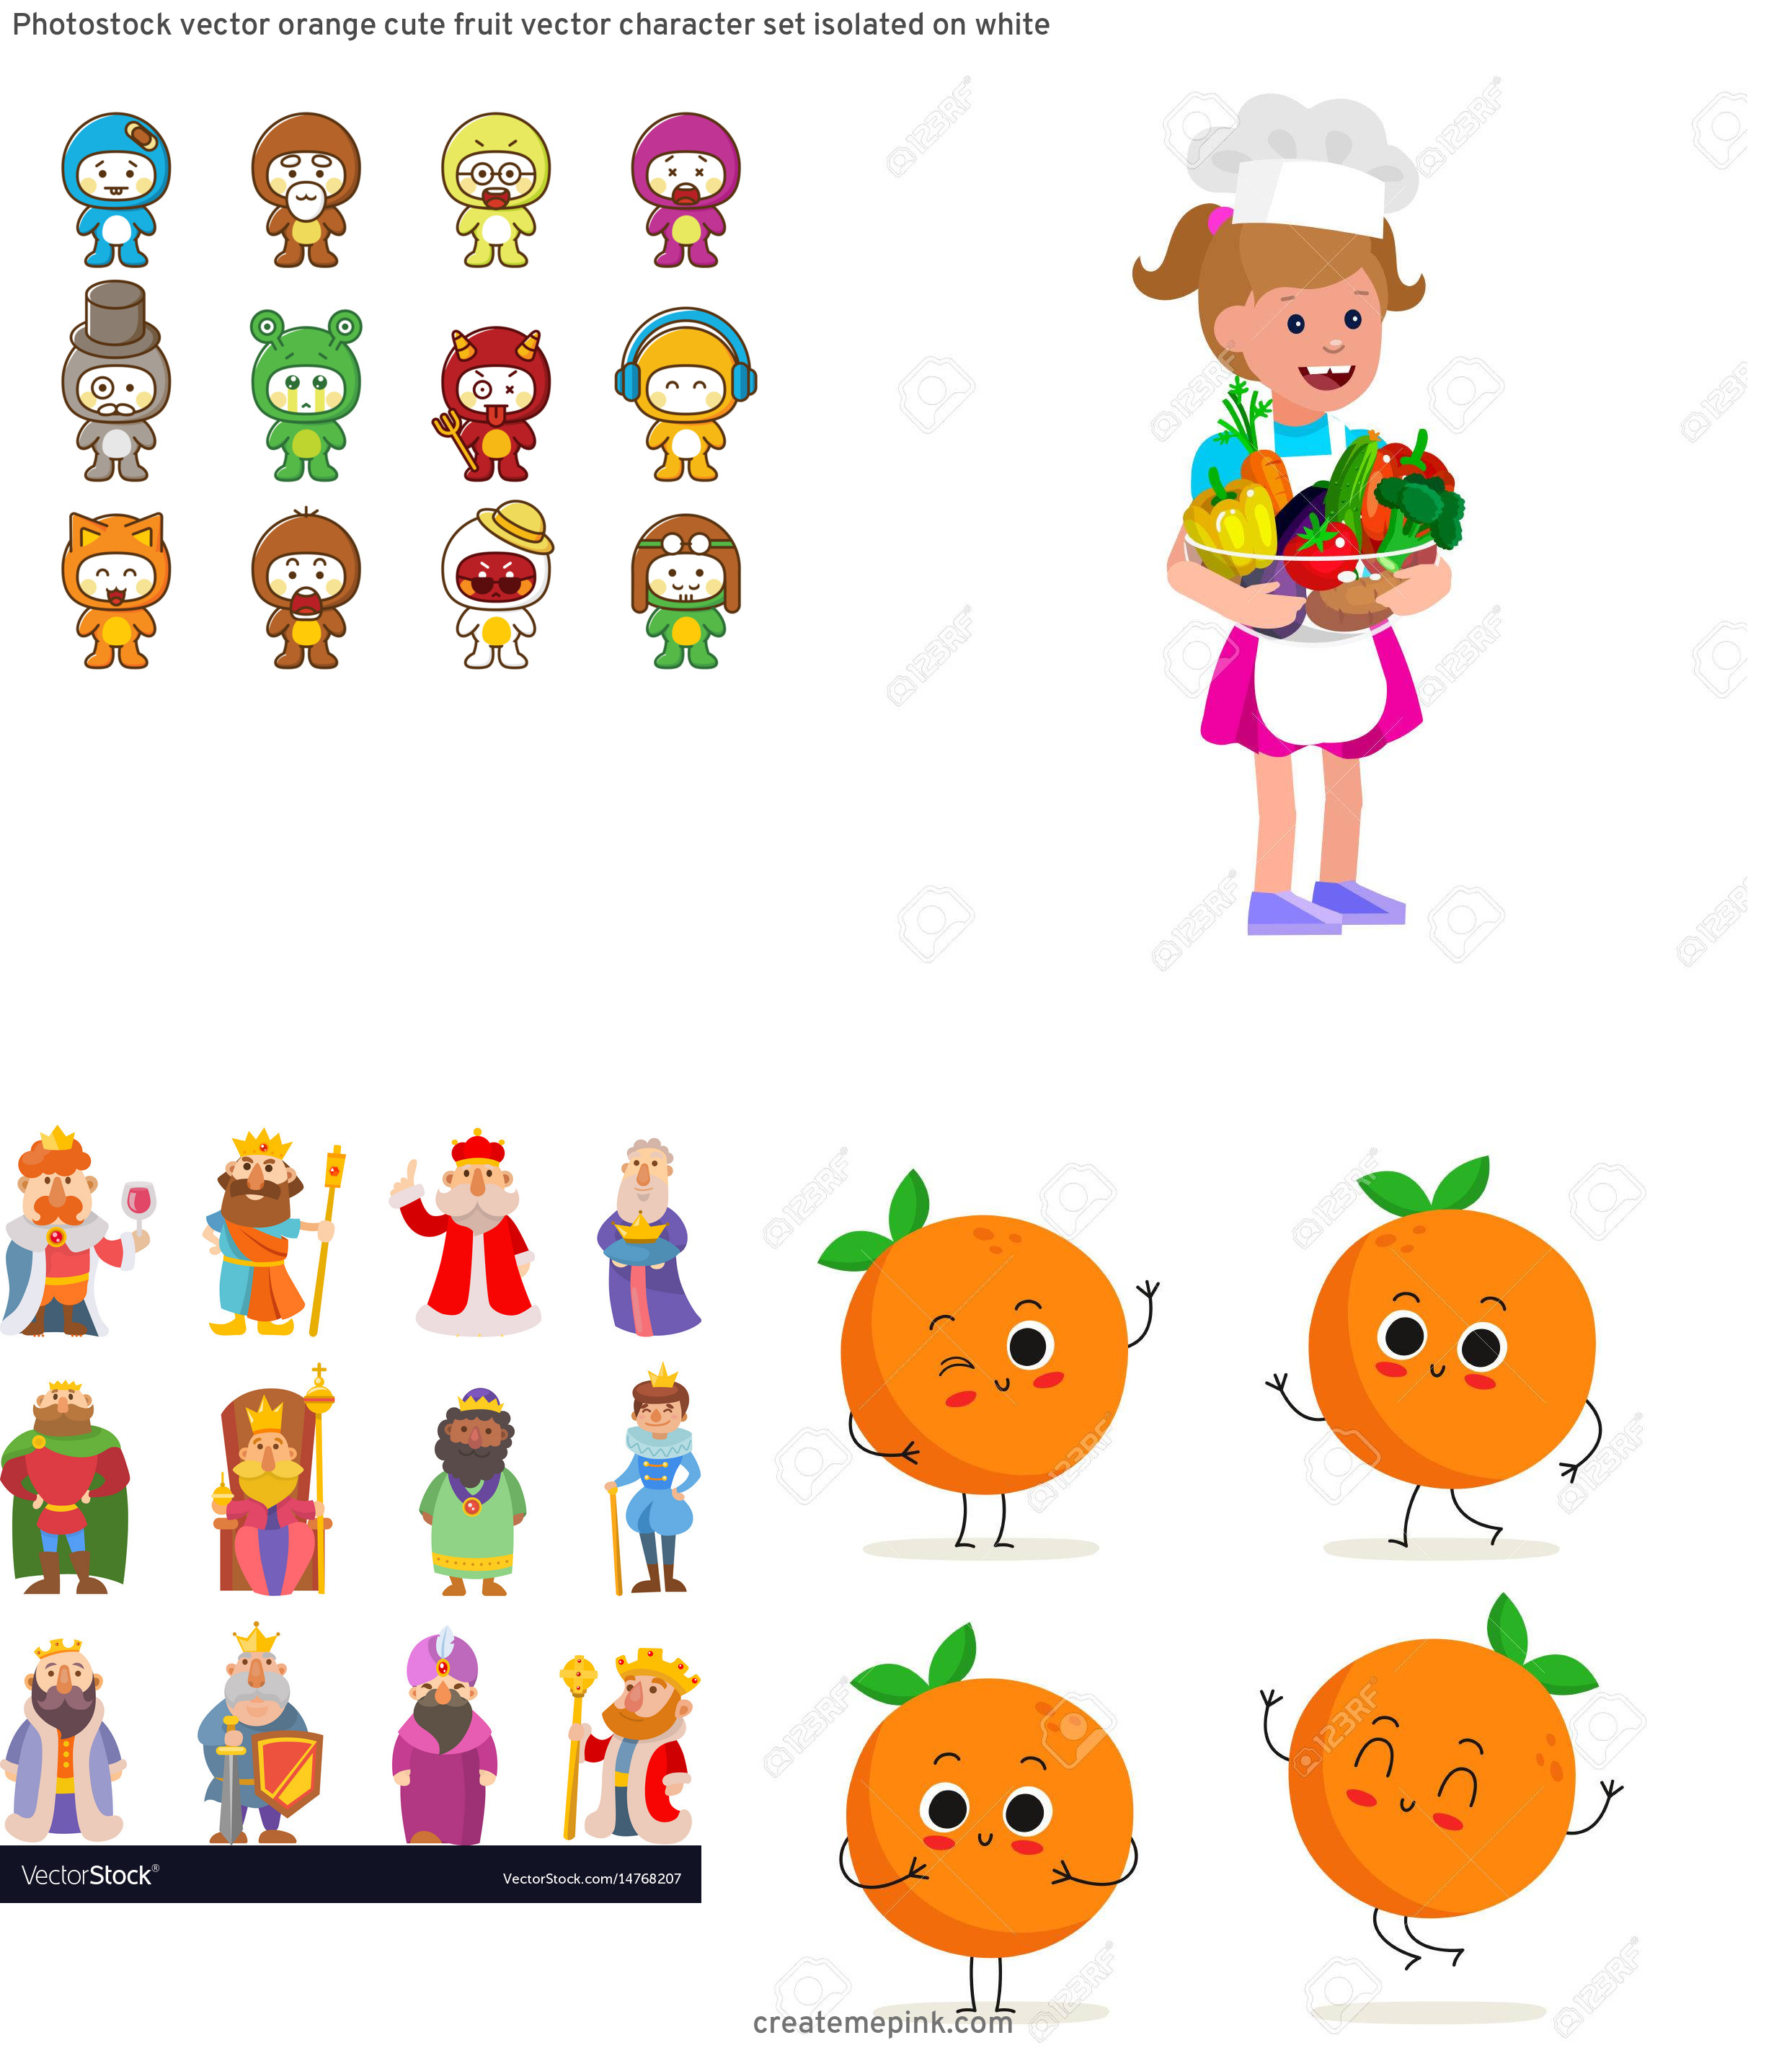 Vute Vector Character: Photostock Vector Orange Cute Fruit Vector Character Set Isolated On White